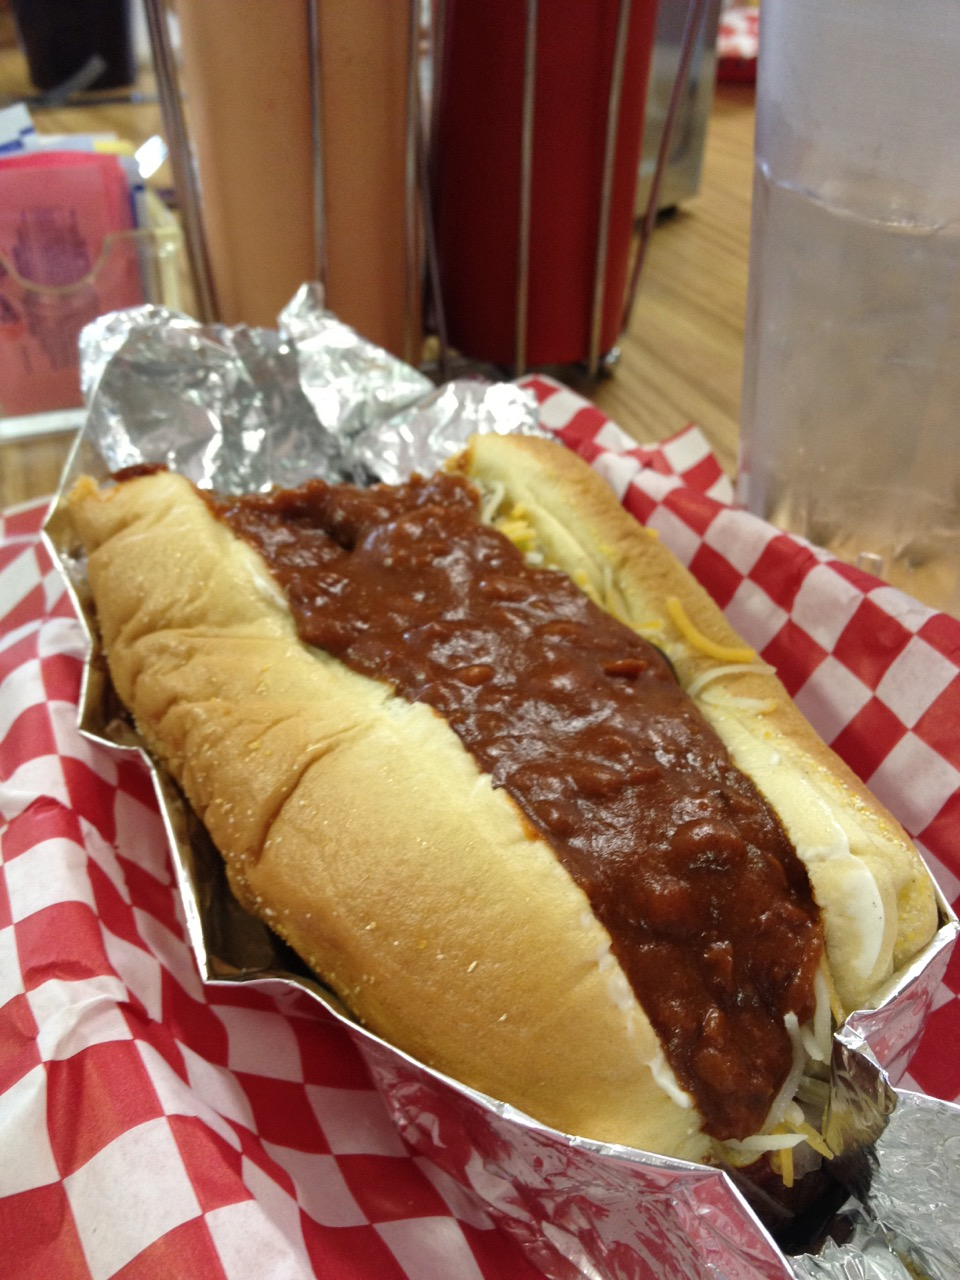 Chili Dogs at Between the Buns in Kennewick – February 22 2012